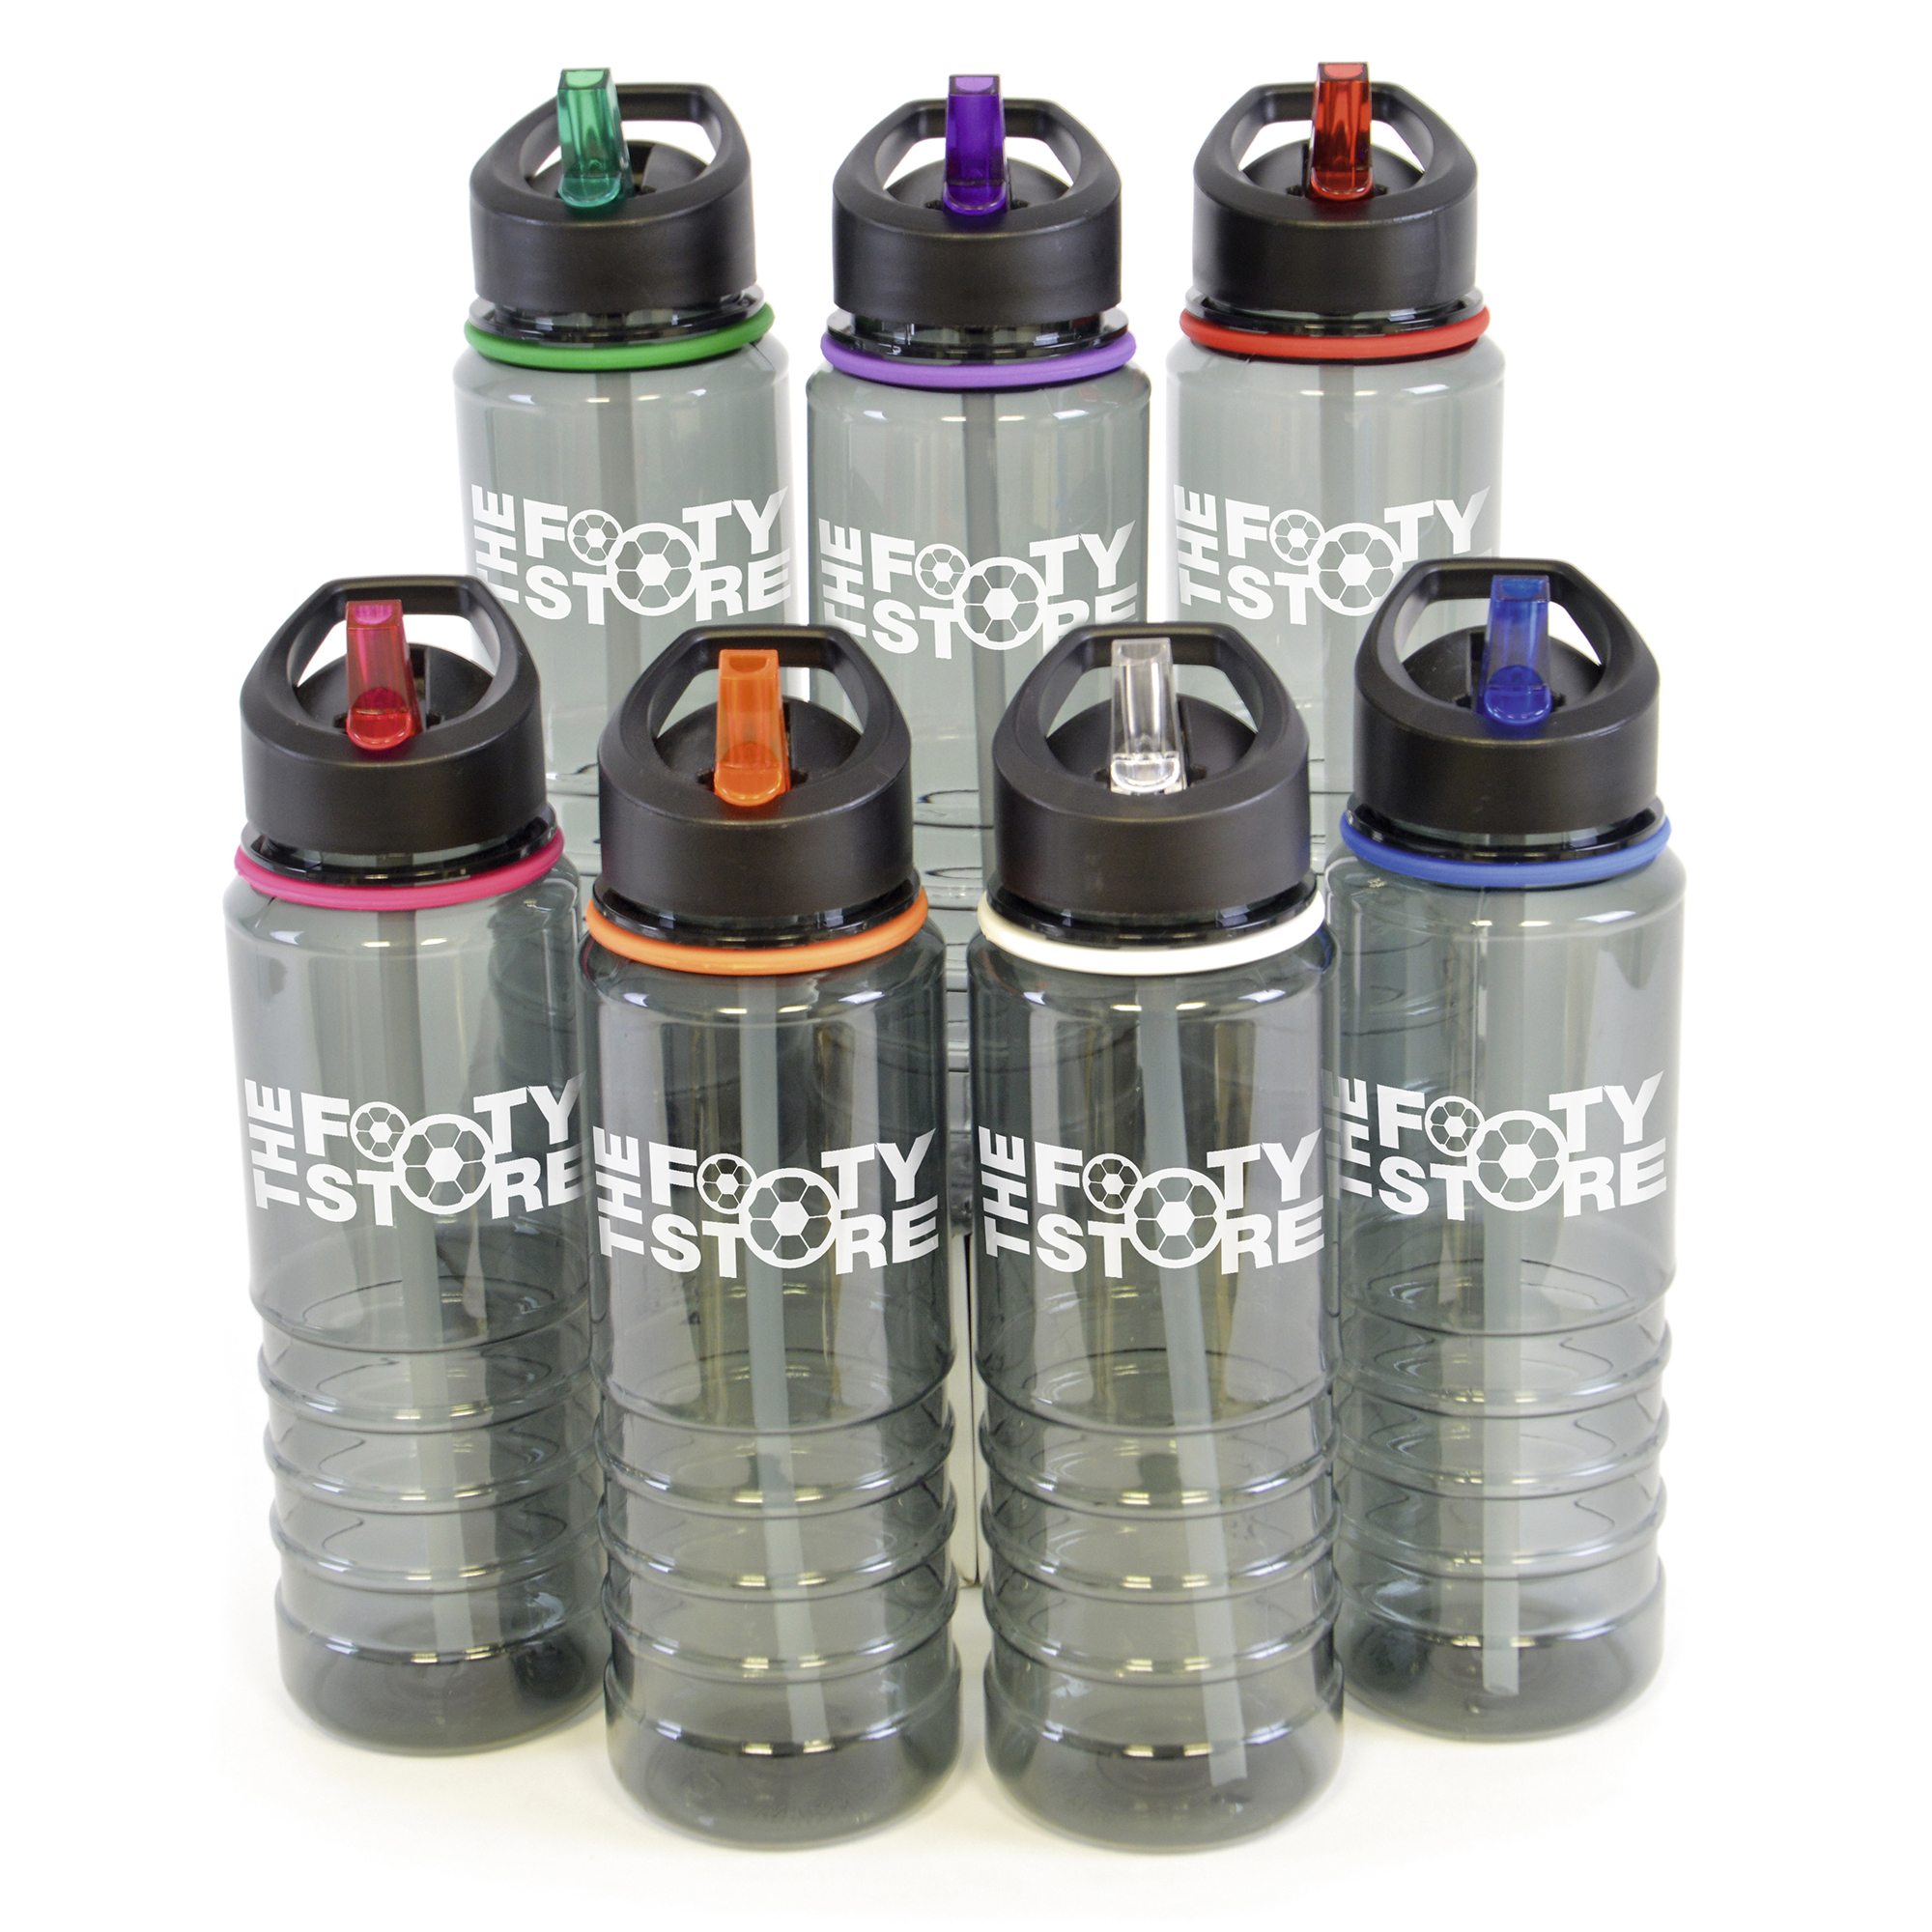 Promotional Resaca Sports Bottles